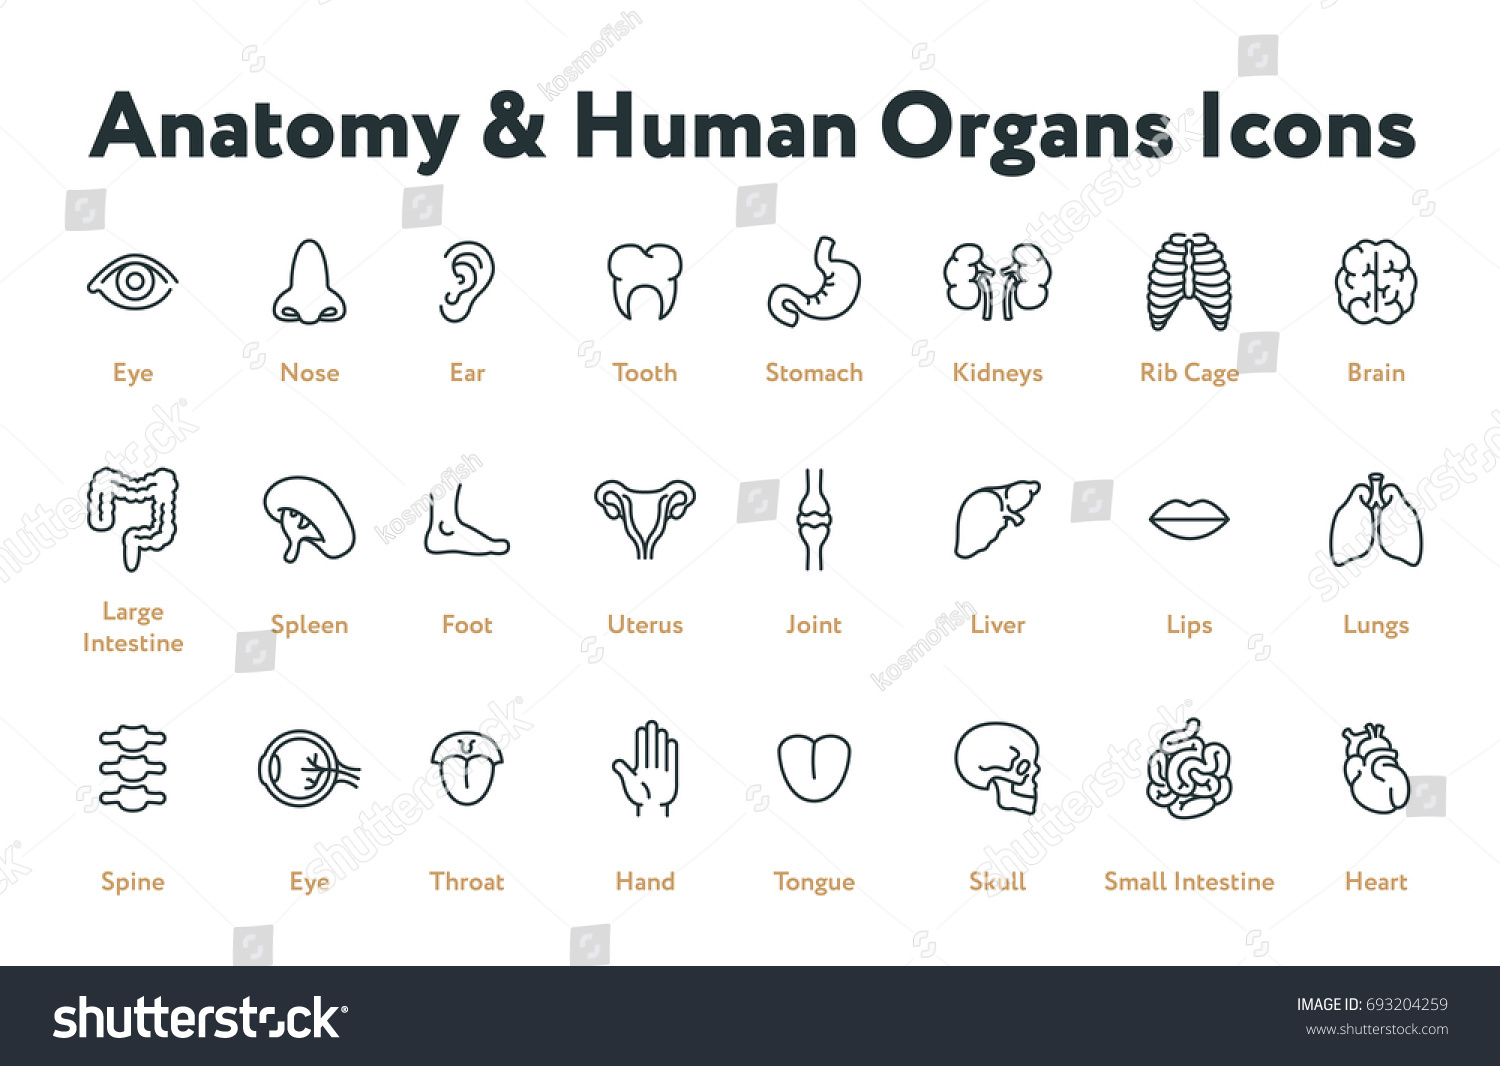 Anatomy Human Body Organs Biology Minimal Stock Vector (Royalty Free ...